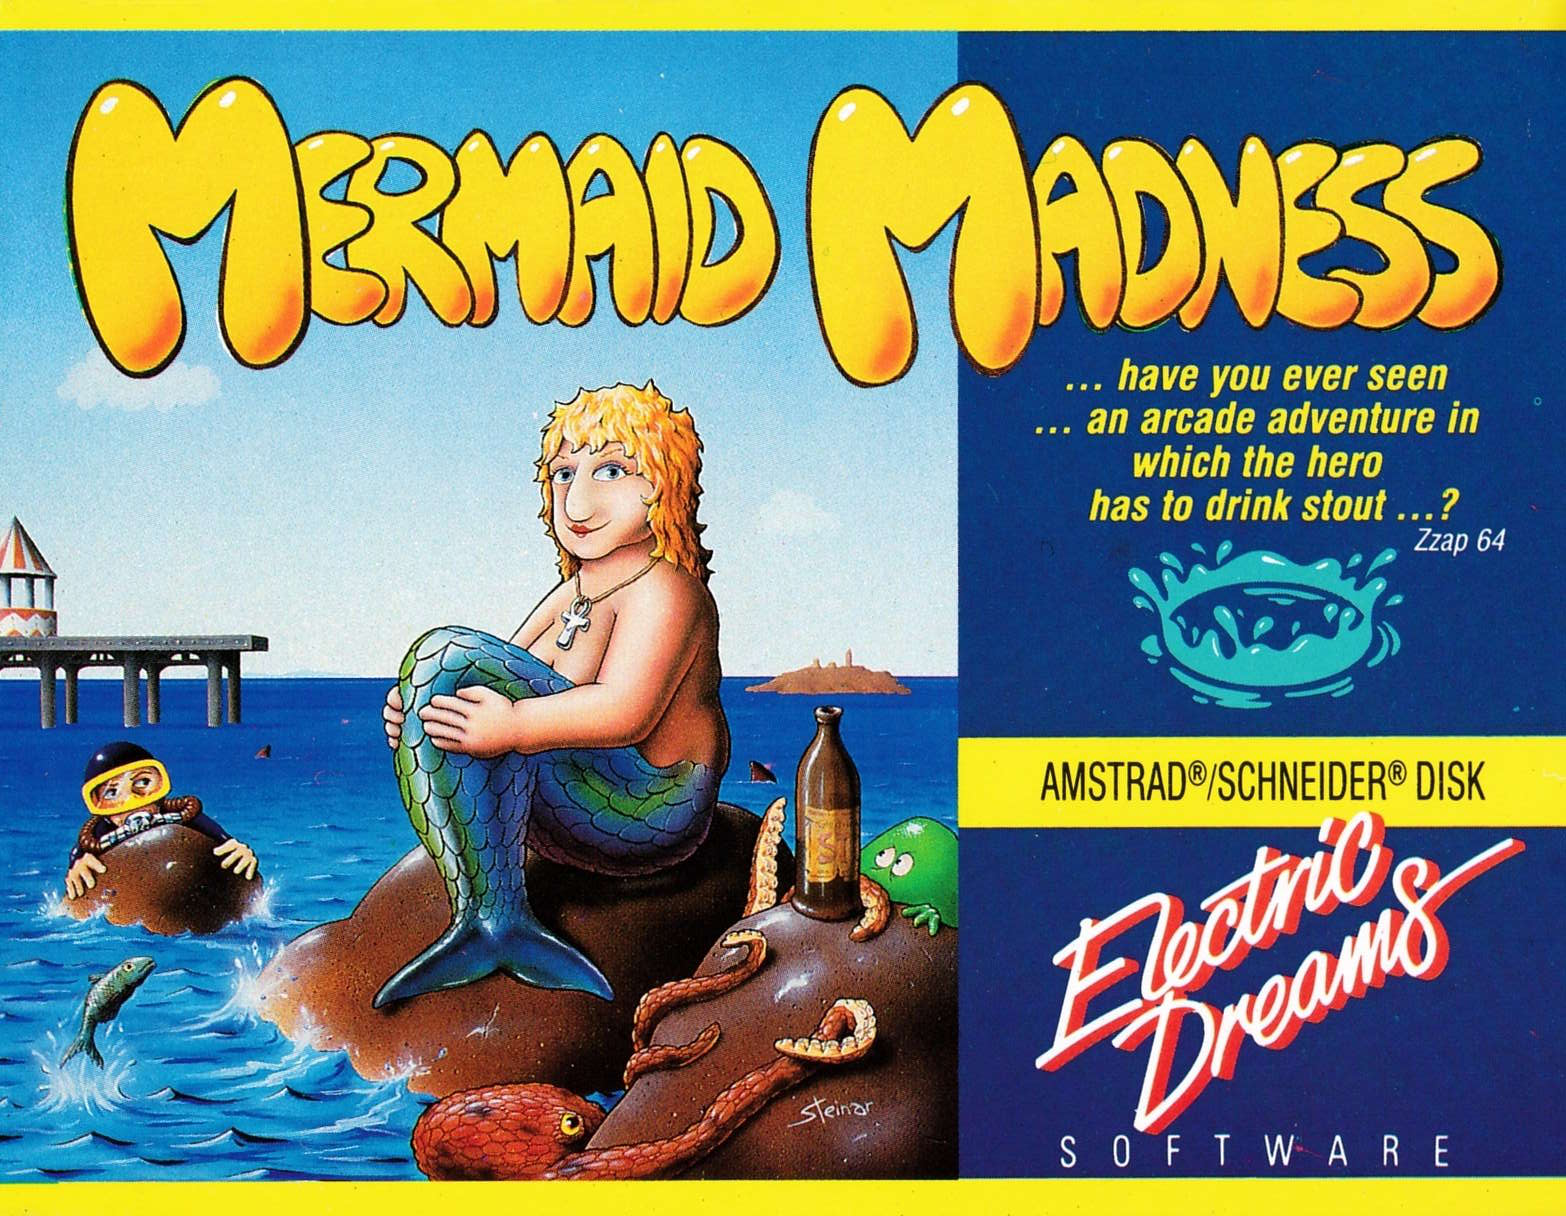 screenshot of the Amstrad CPC game Mermaid madness by GameBase CPC